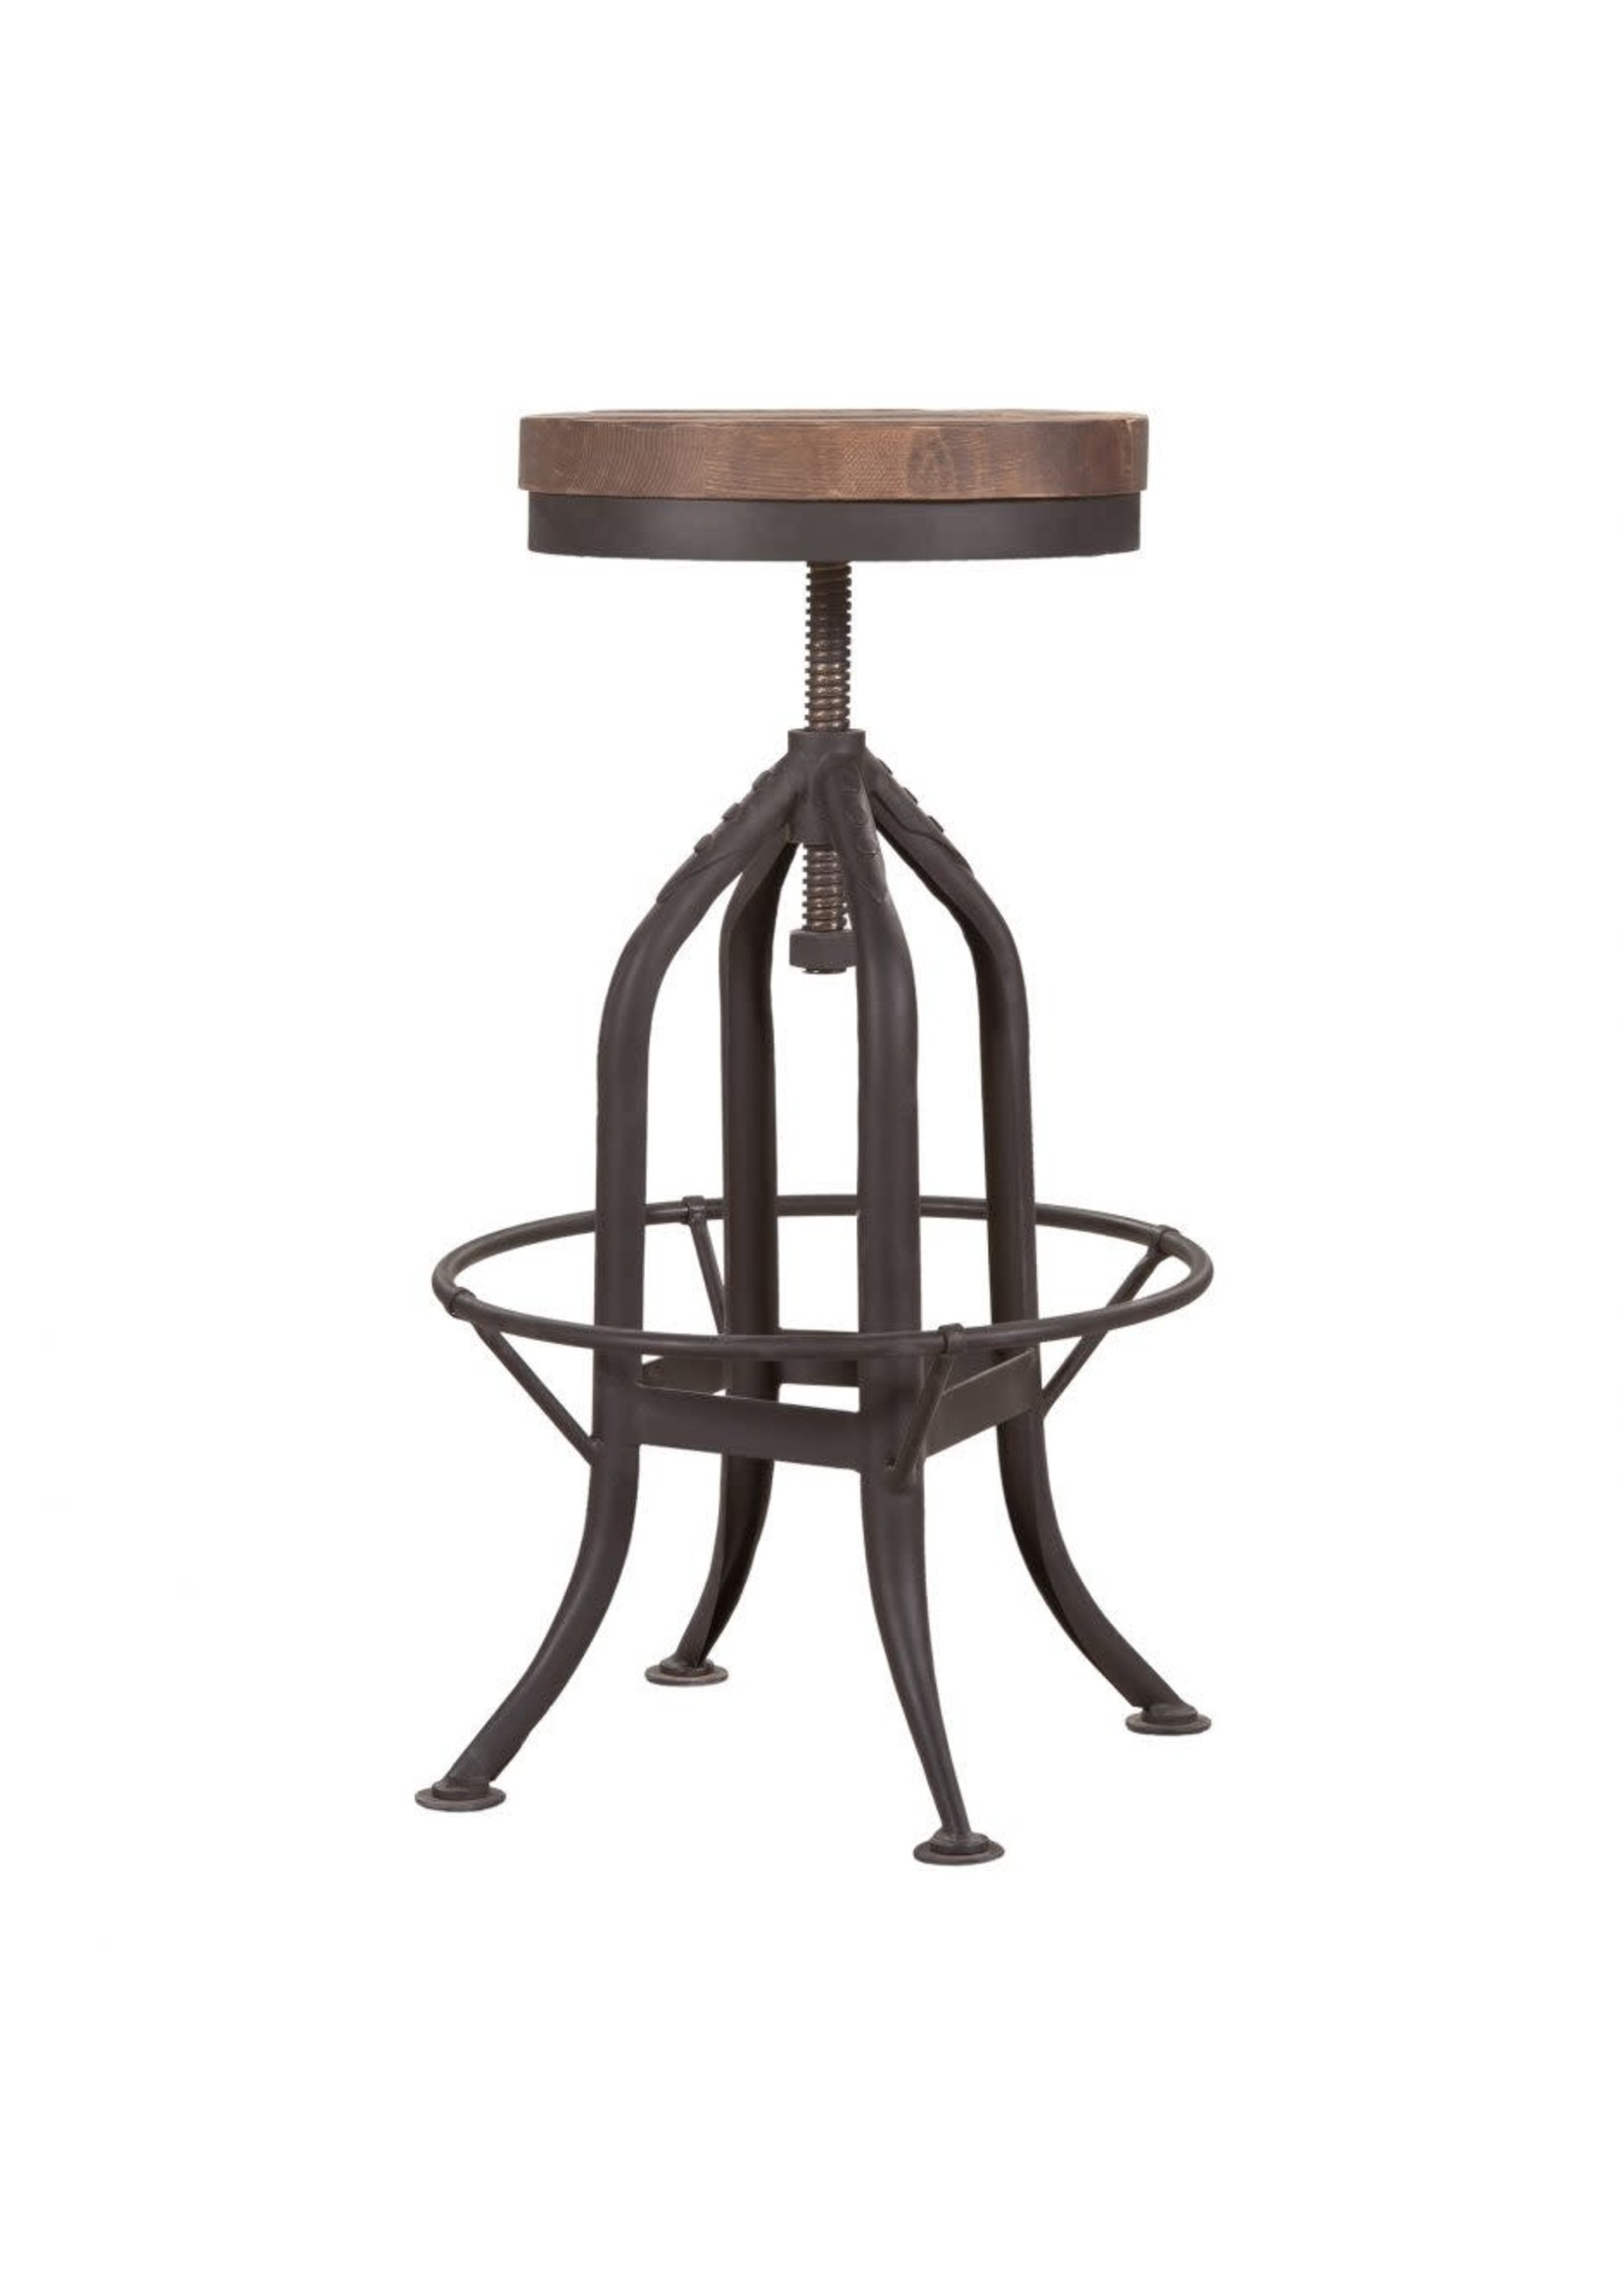 Moes Home Collection Brut Barstool By MOES